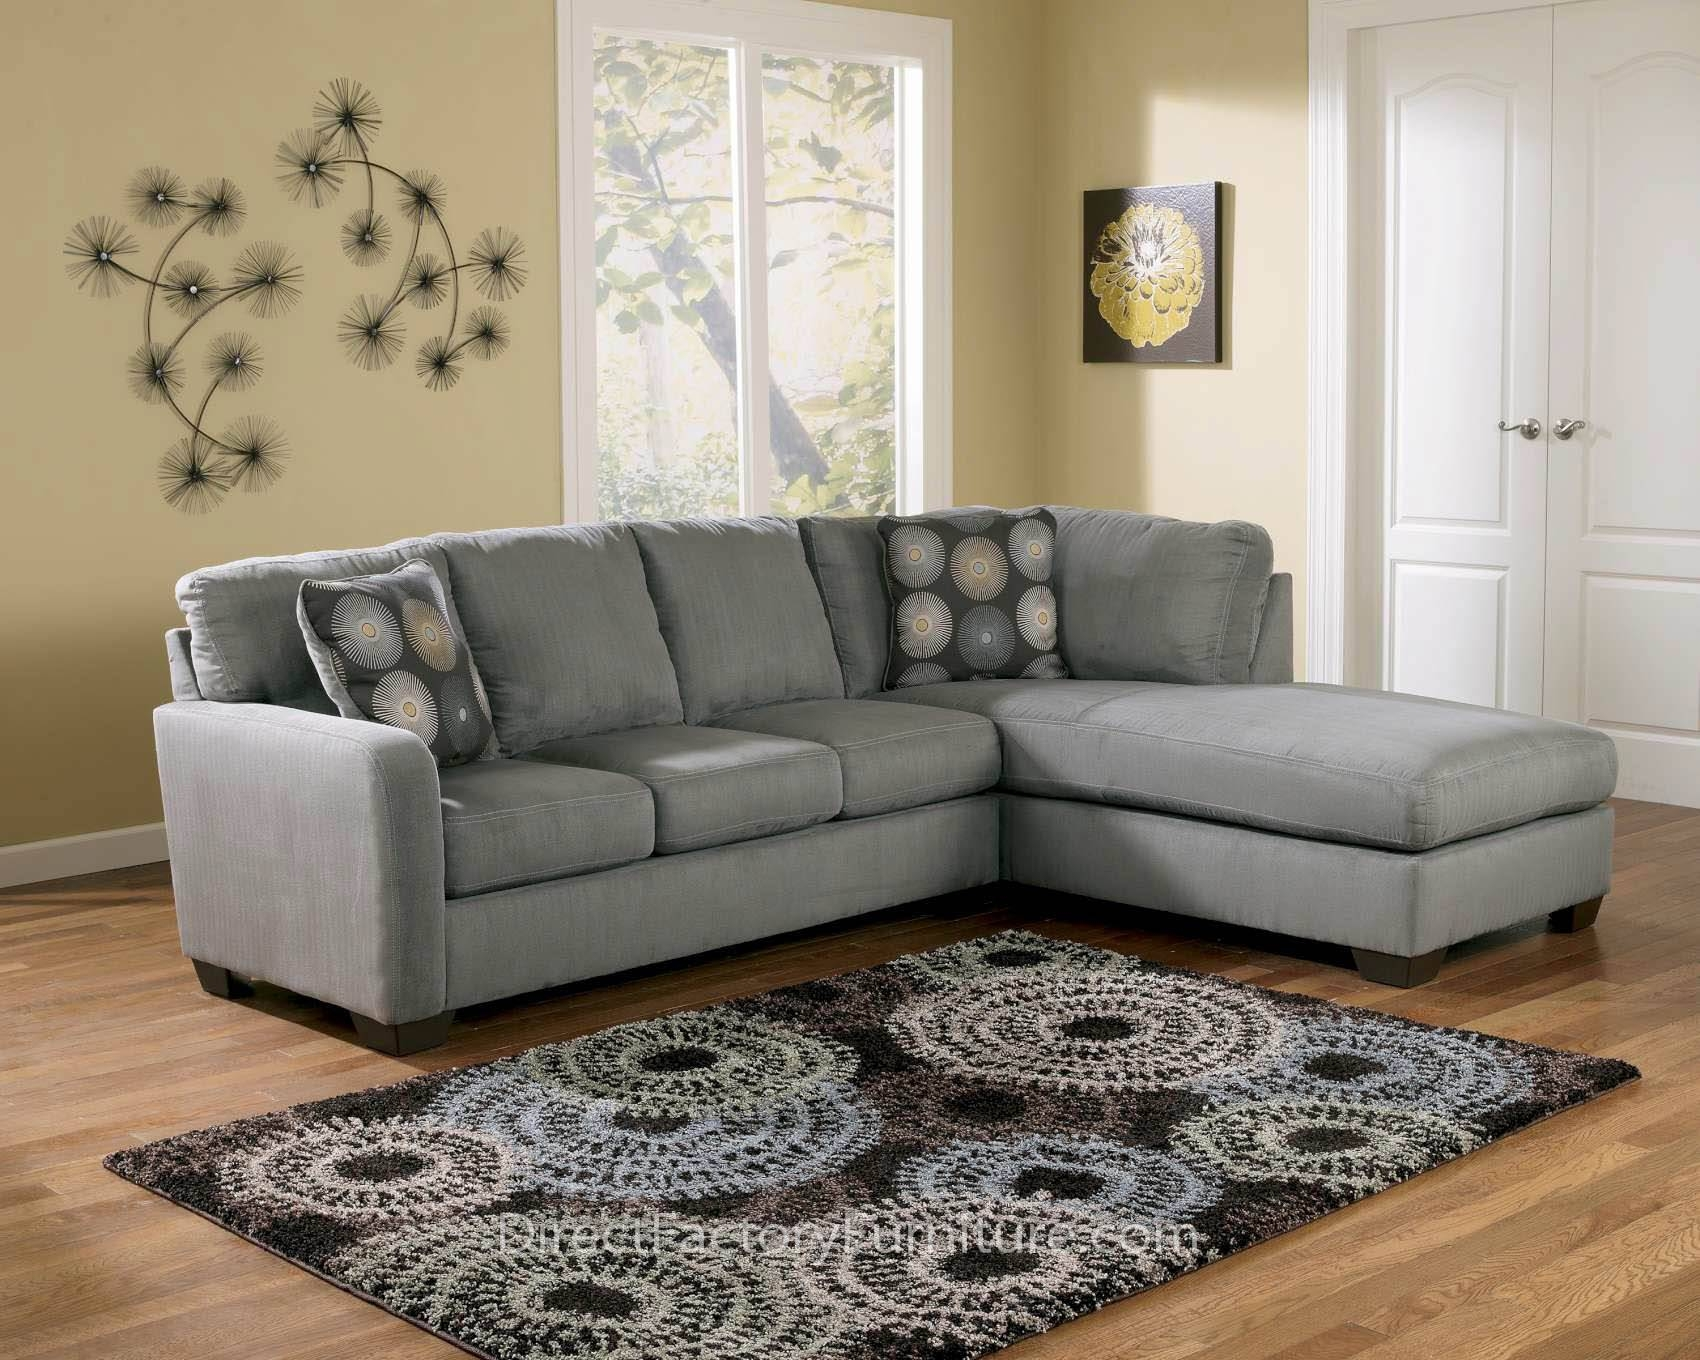 Alluring Small Living Room Design With Grey Single Sofas And Brown for Small Lounge Sofas (Image 3 of 15)